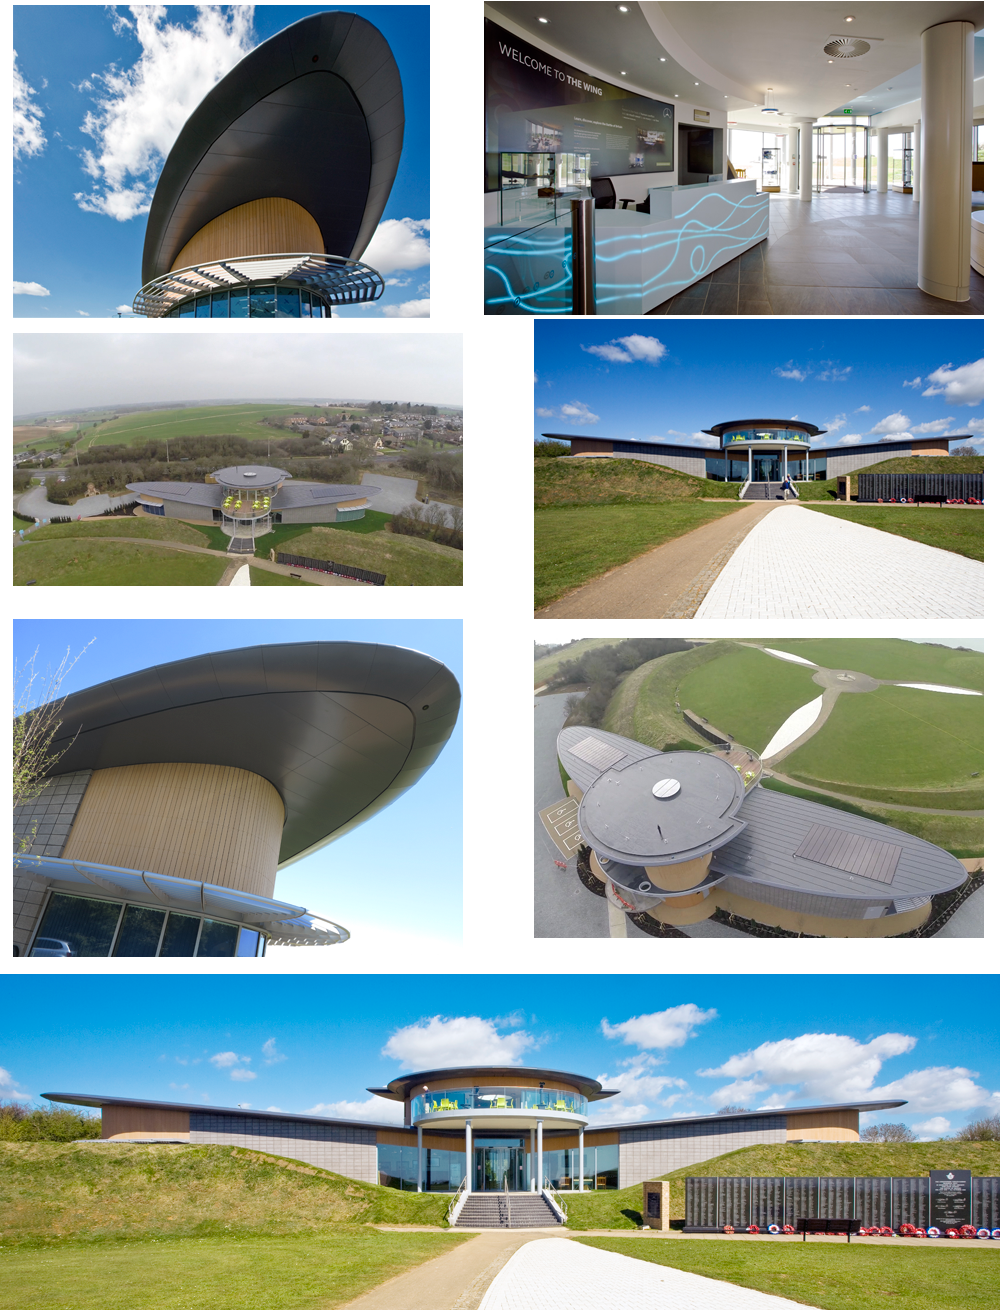 various images of the wing